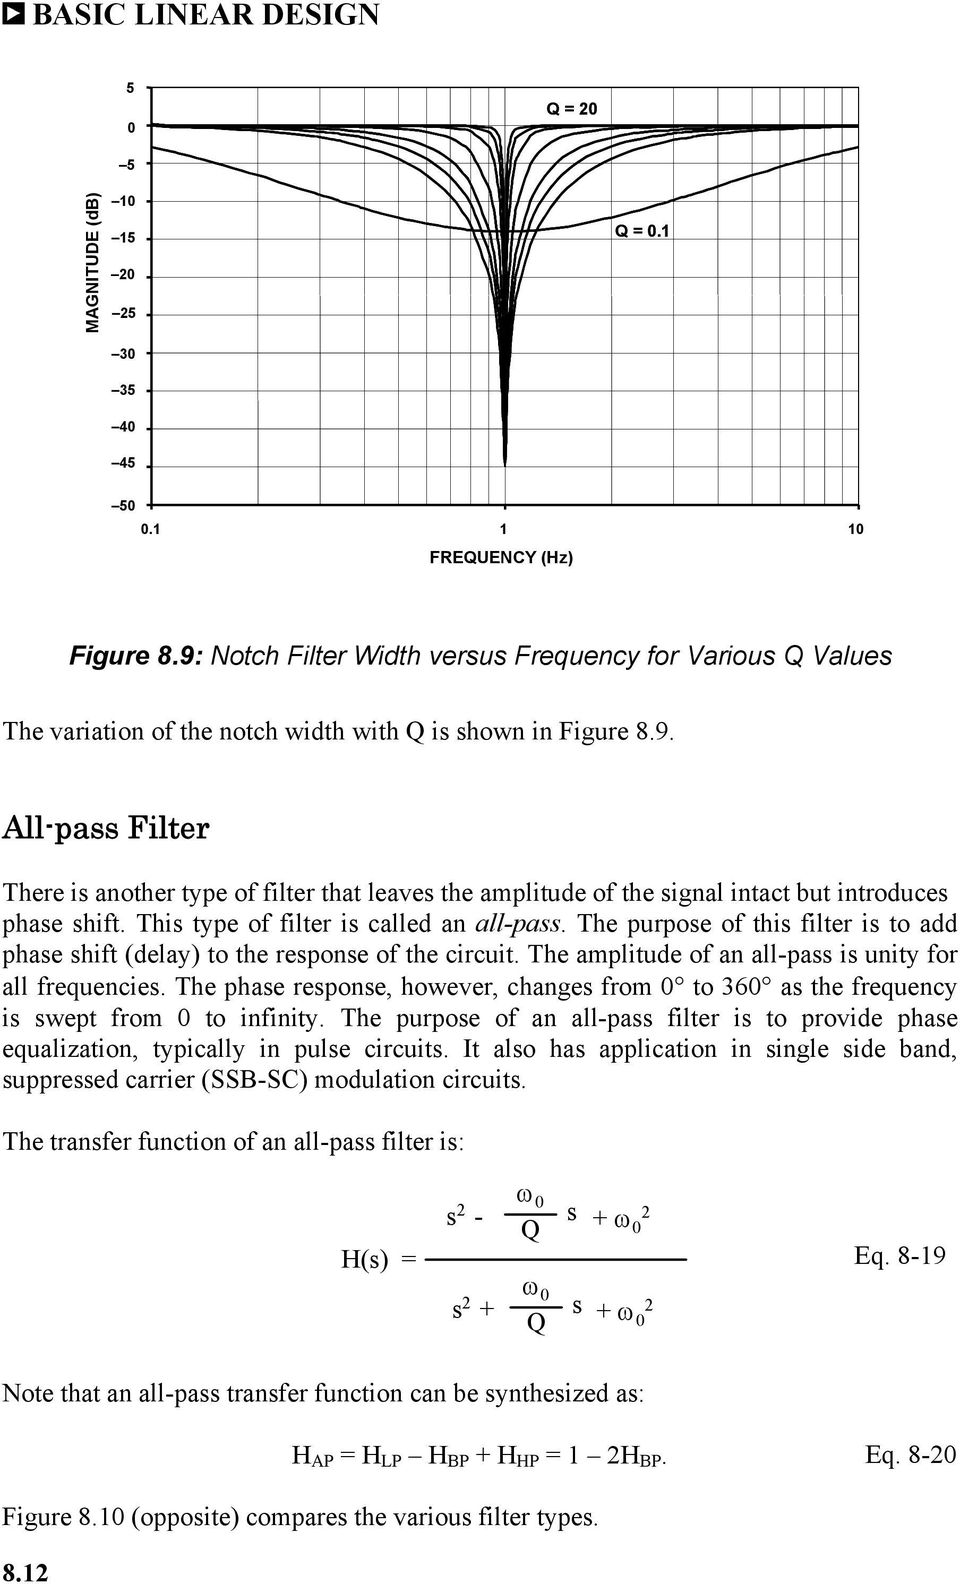 Chapter 8 Analog Filters Pdf Type Of Filter Circuit This Is Called An Allpass The Purpose To